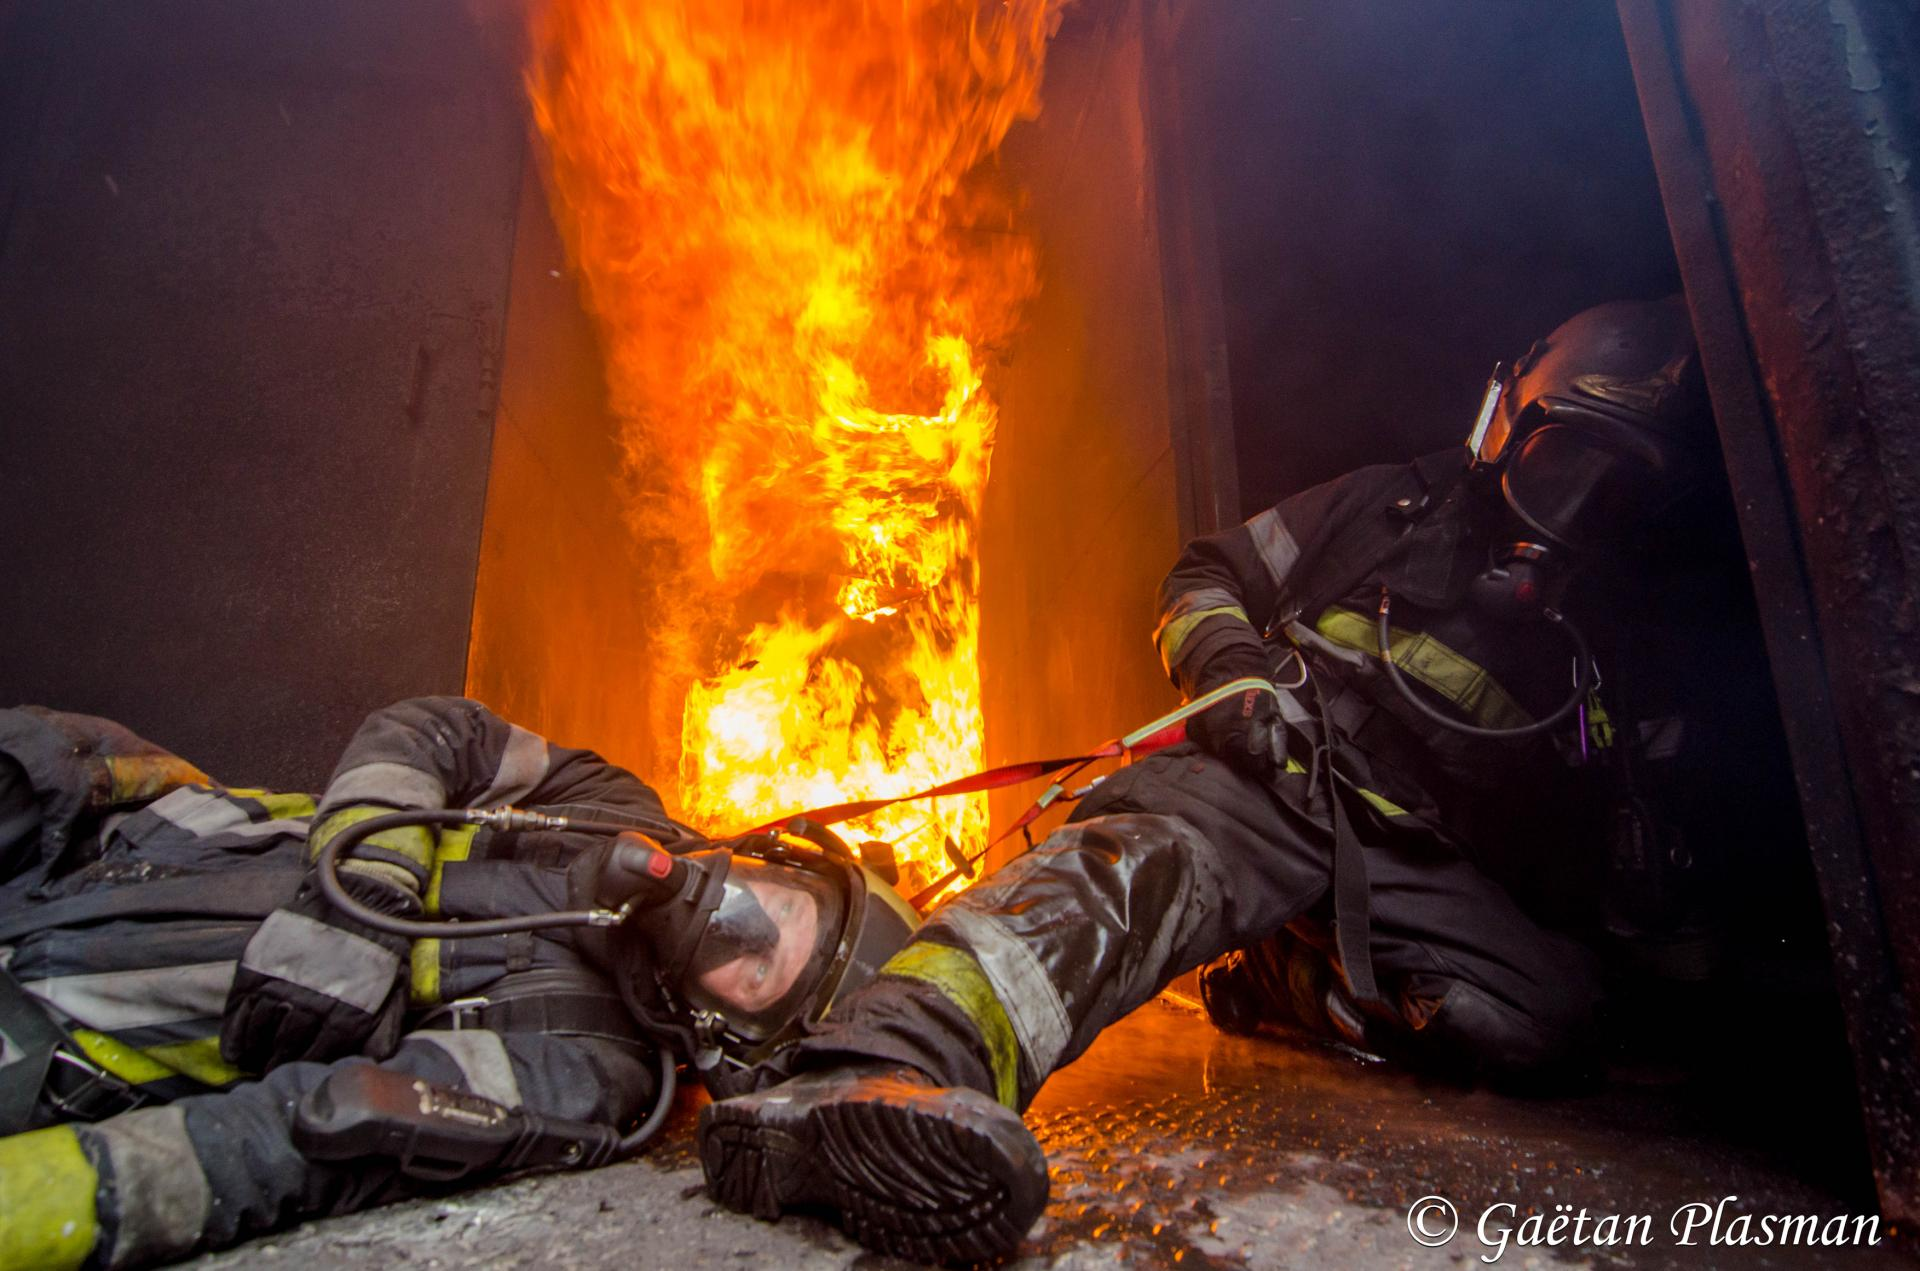 RIT firefighter